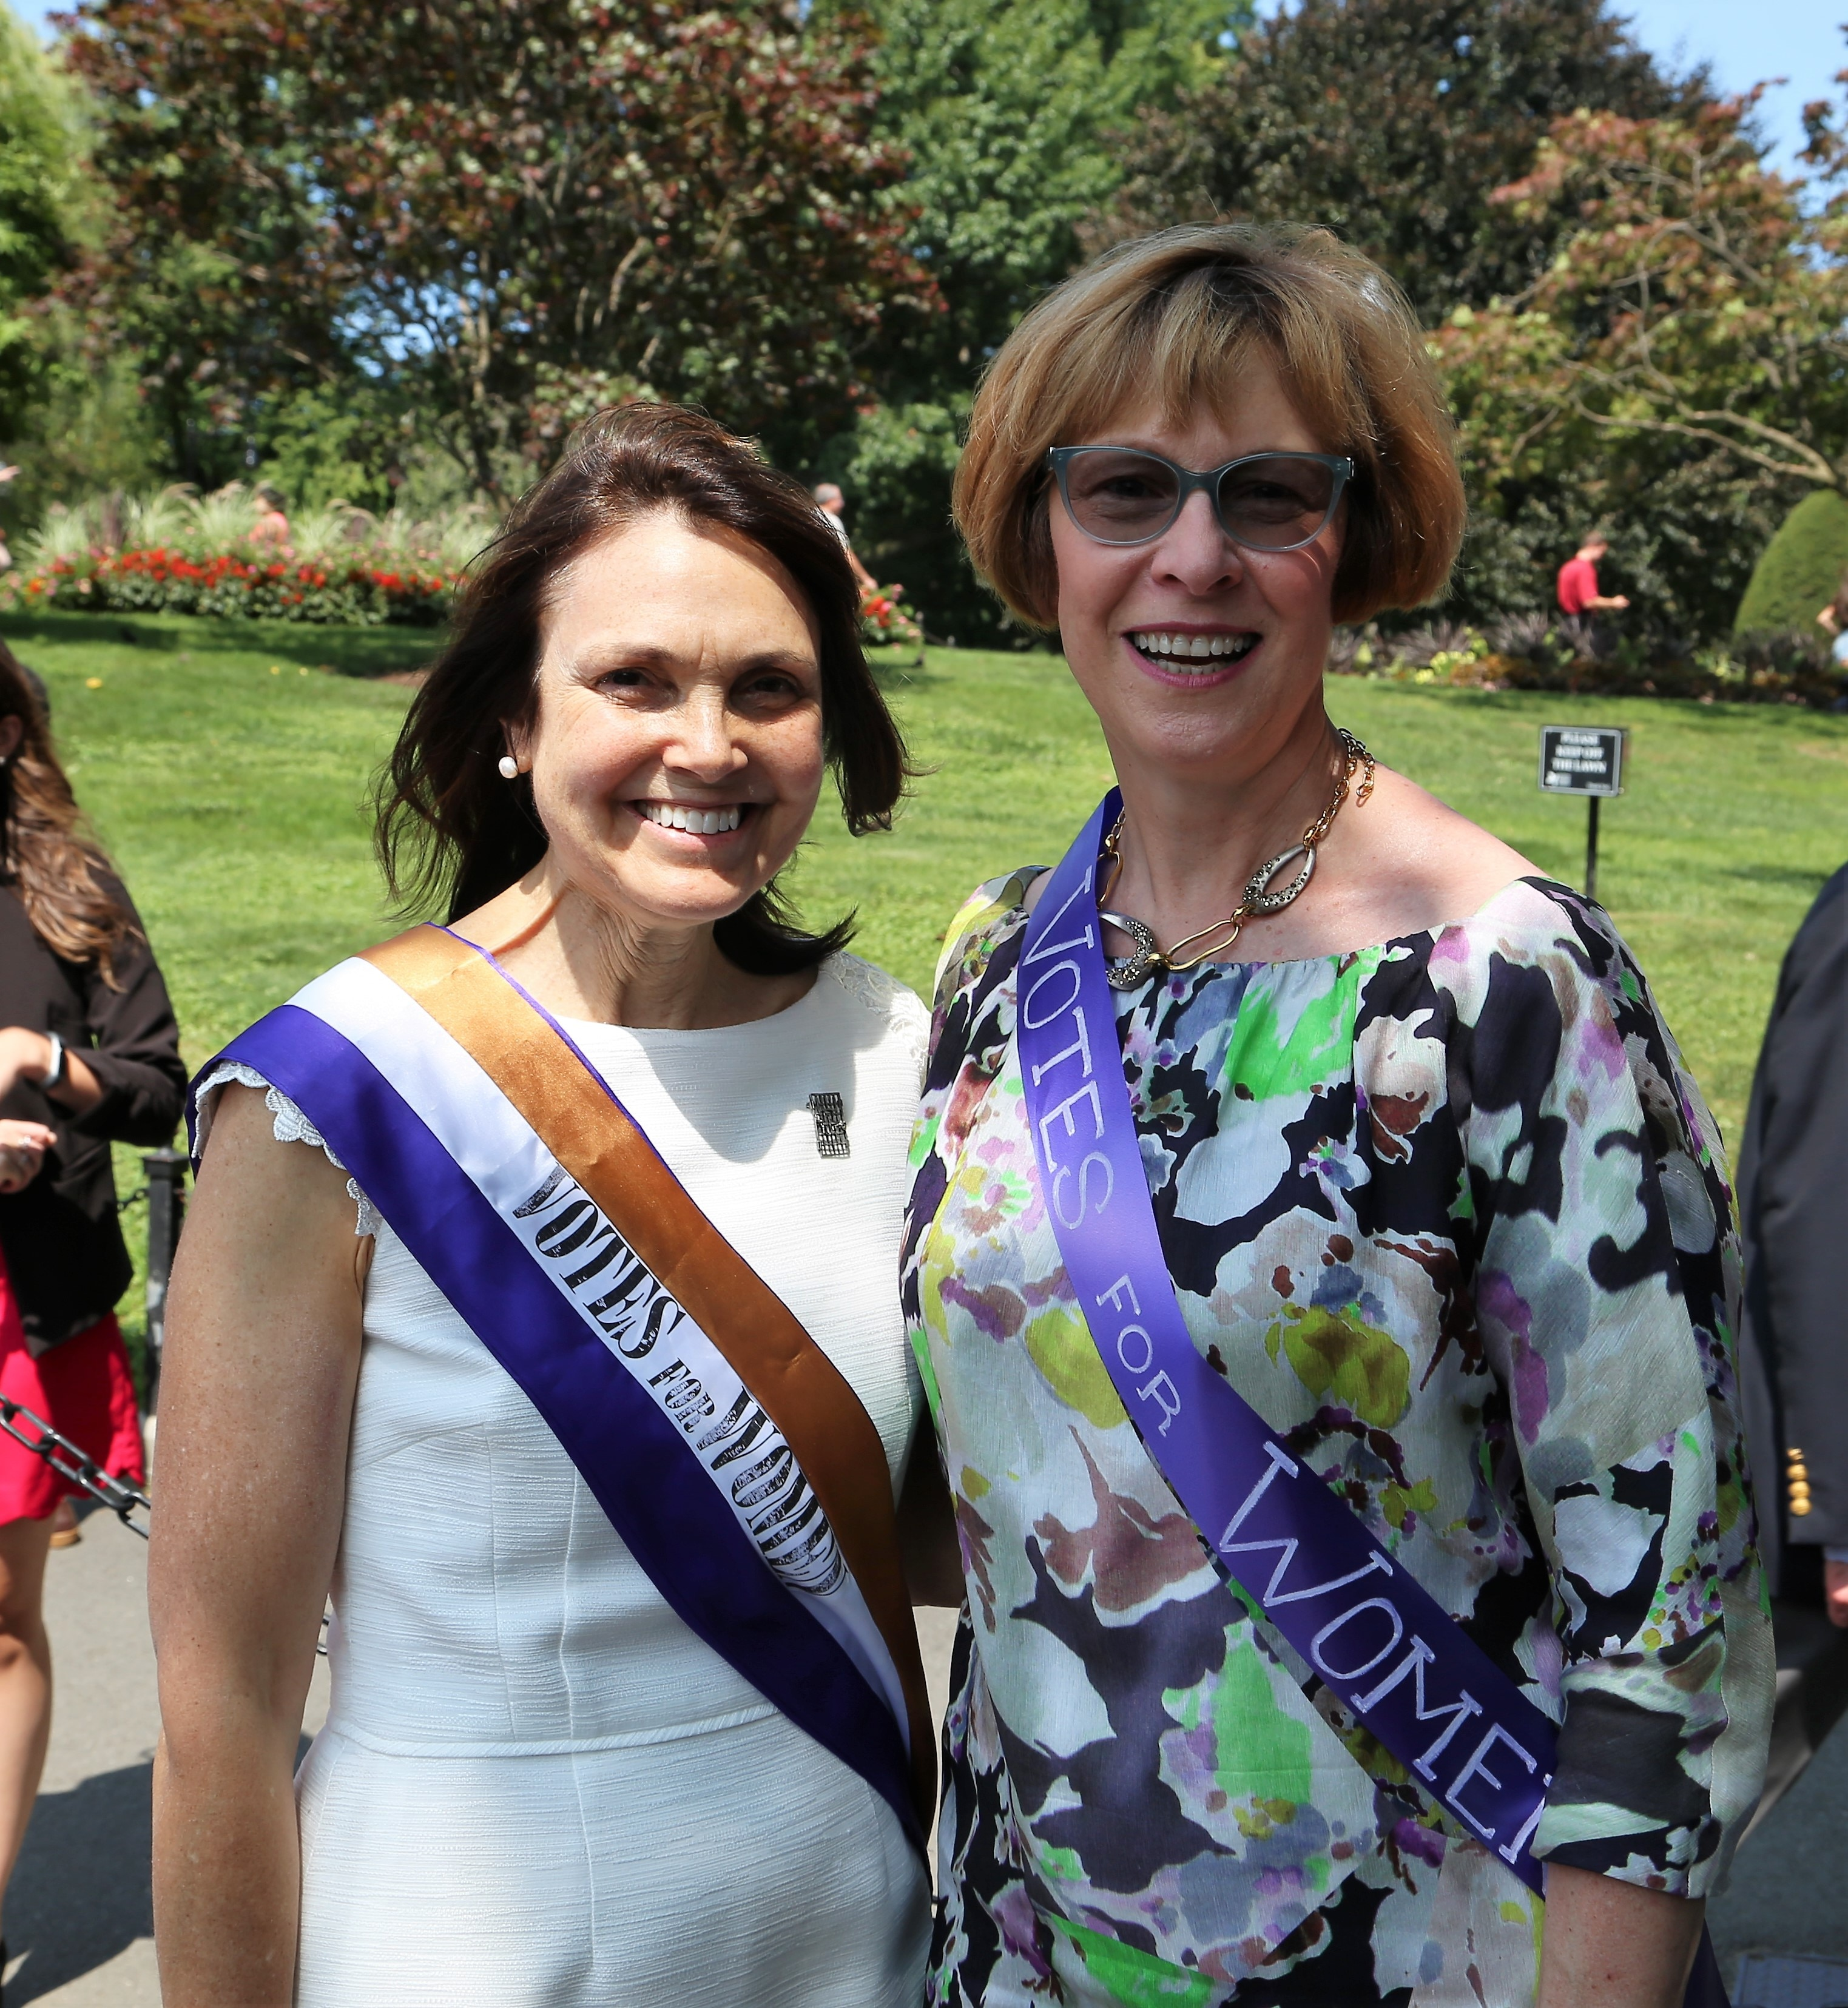 Auditor Bump with Fredie Kay, President of the Women's Suffrage Celebration, wearing suffragette sashes.